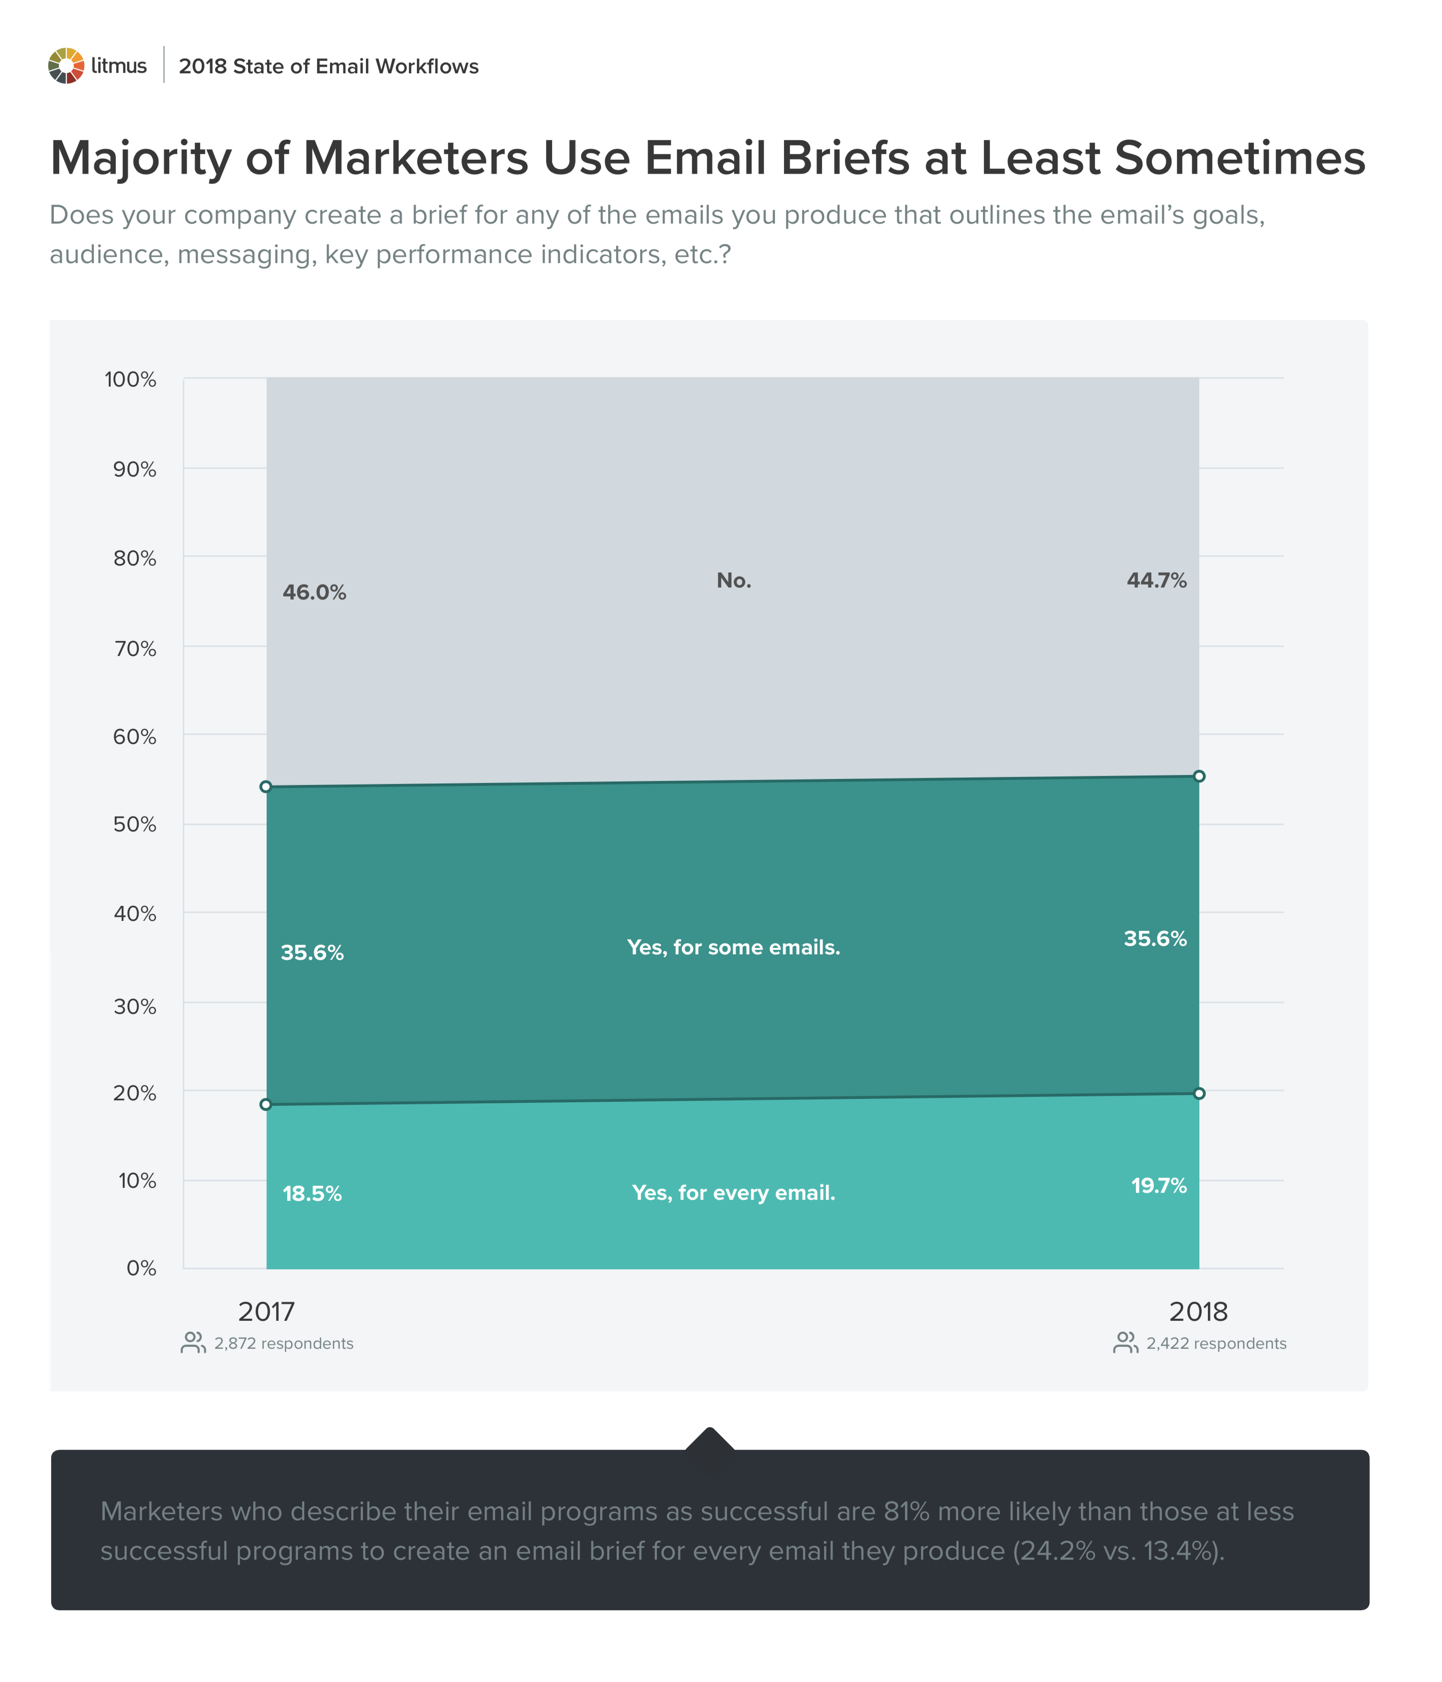 Majority of Marketers Use Email Briefs at Least Sometimes